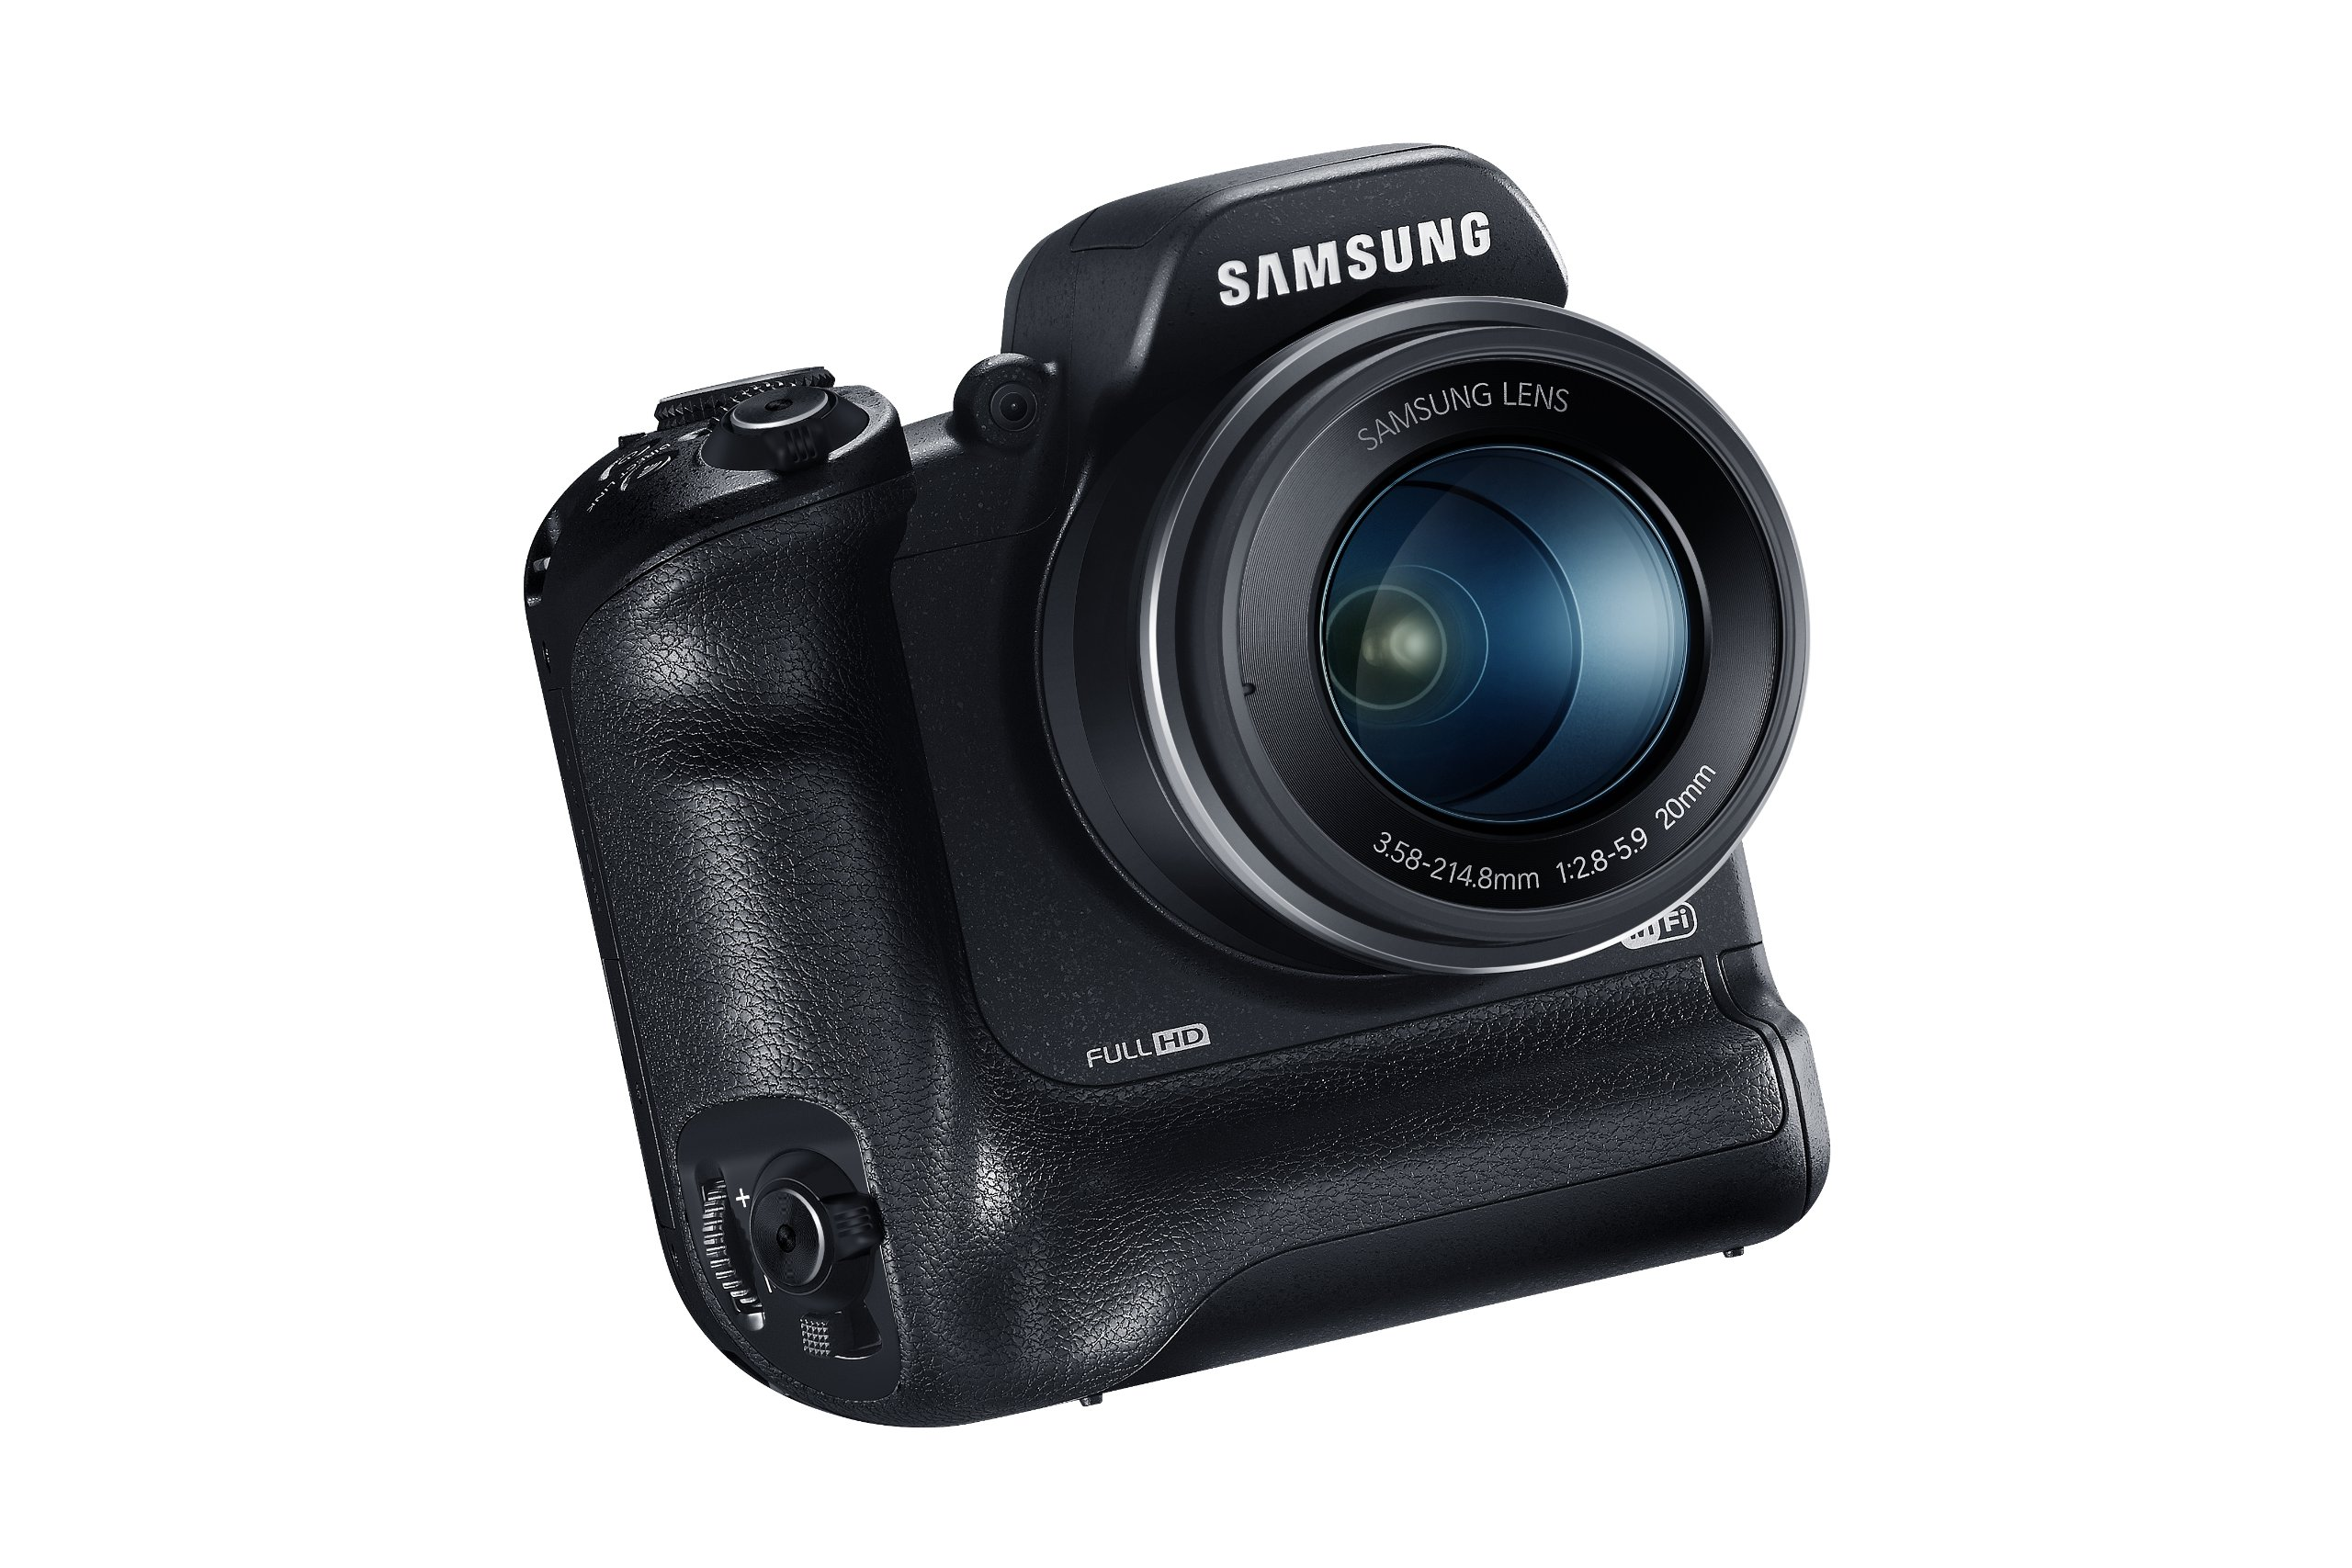 Samsung WB2200F 16.3MP CMOS Smart WiFi & NFC Digital Camera with 60x Optical  Zoom, 3.0'' LCD and 1080p HD Video (Black) by Samsung (Image #9)